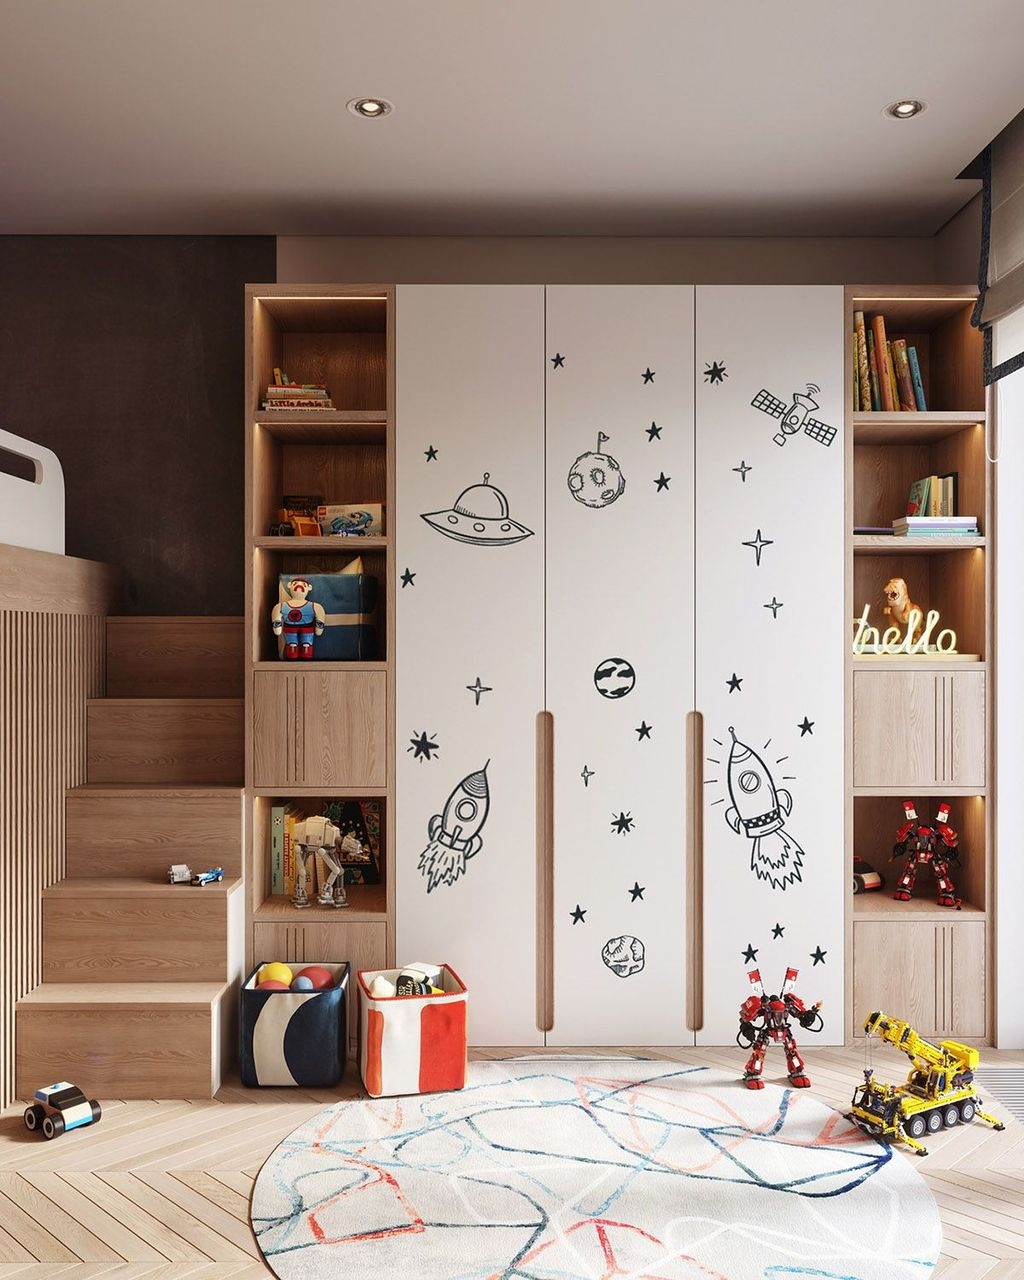 Inspiring Kids Room Design Ideas 43